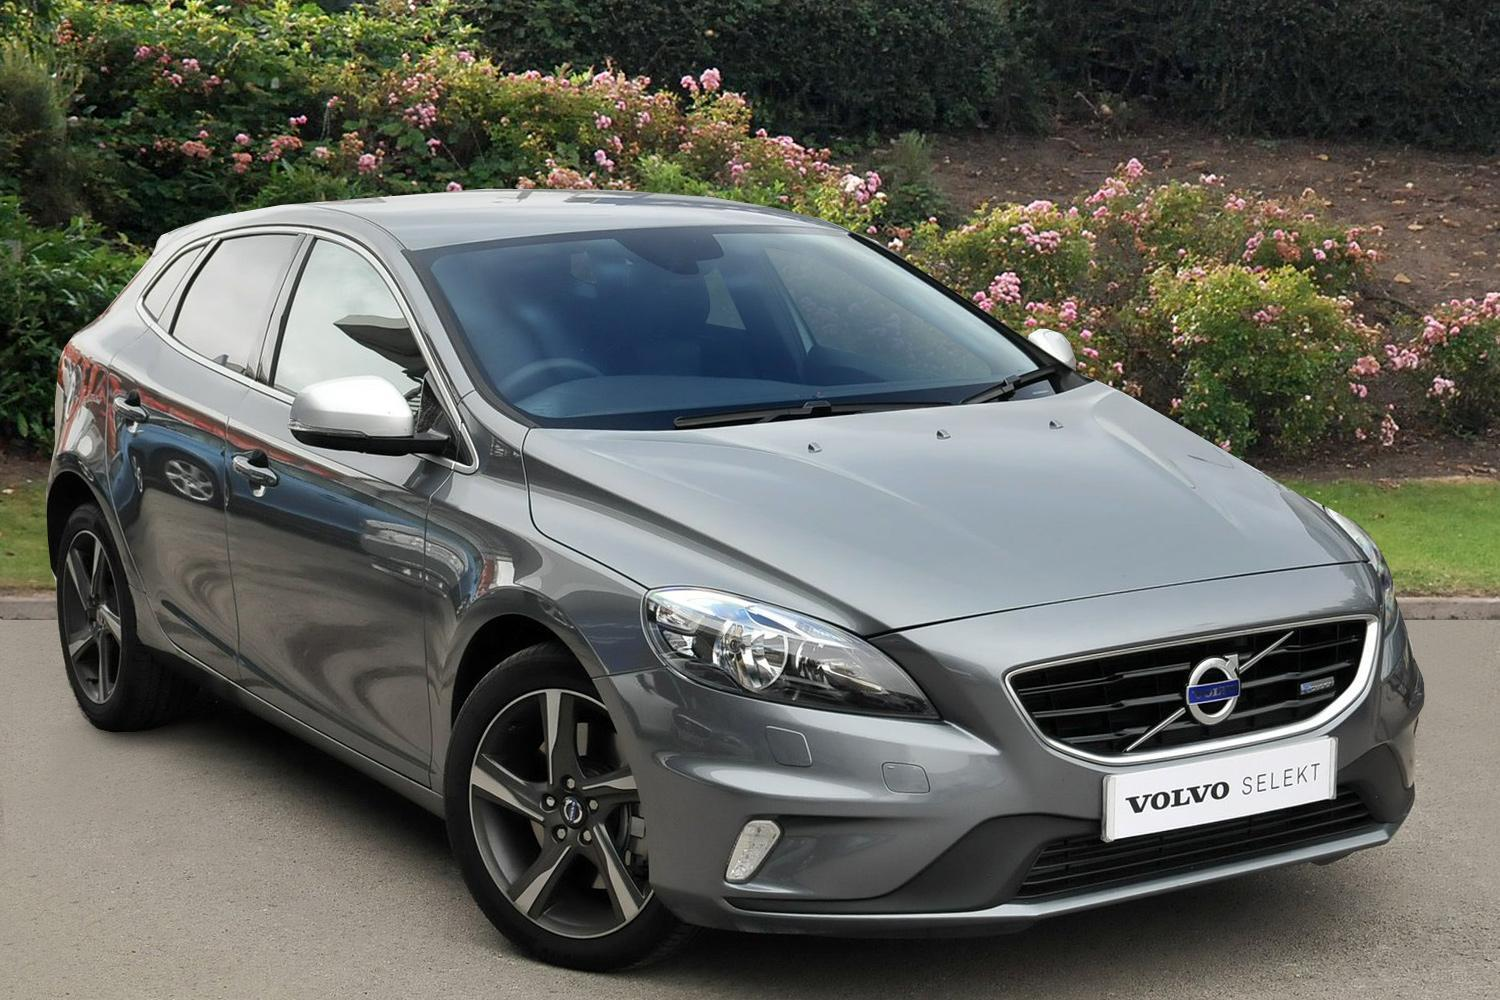 used volvo v40 d4 190 r design nav 5dr geartronic diesel. Black Bedroom Furniture Sets. Home Design Ideas